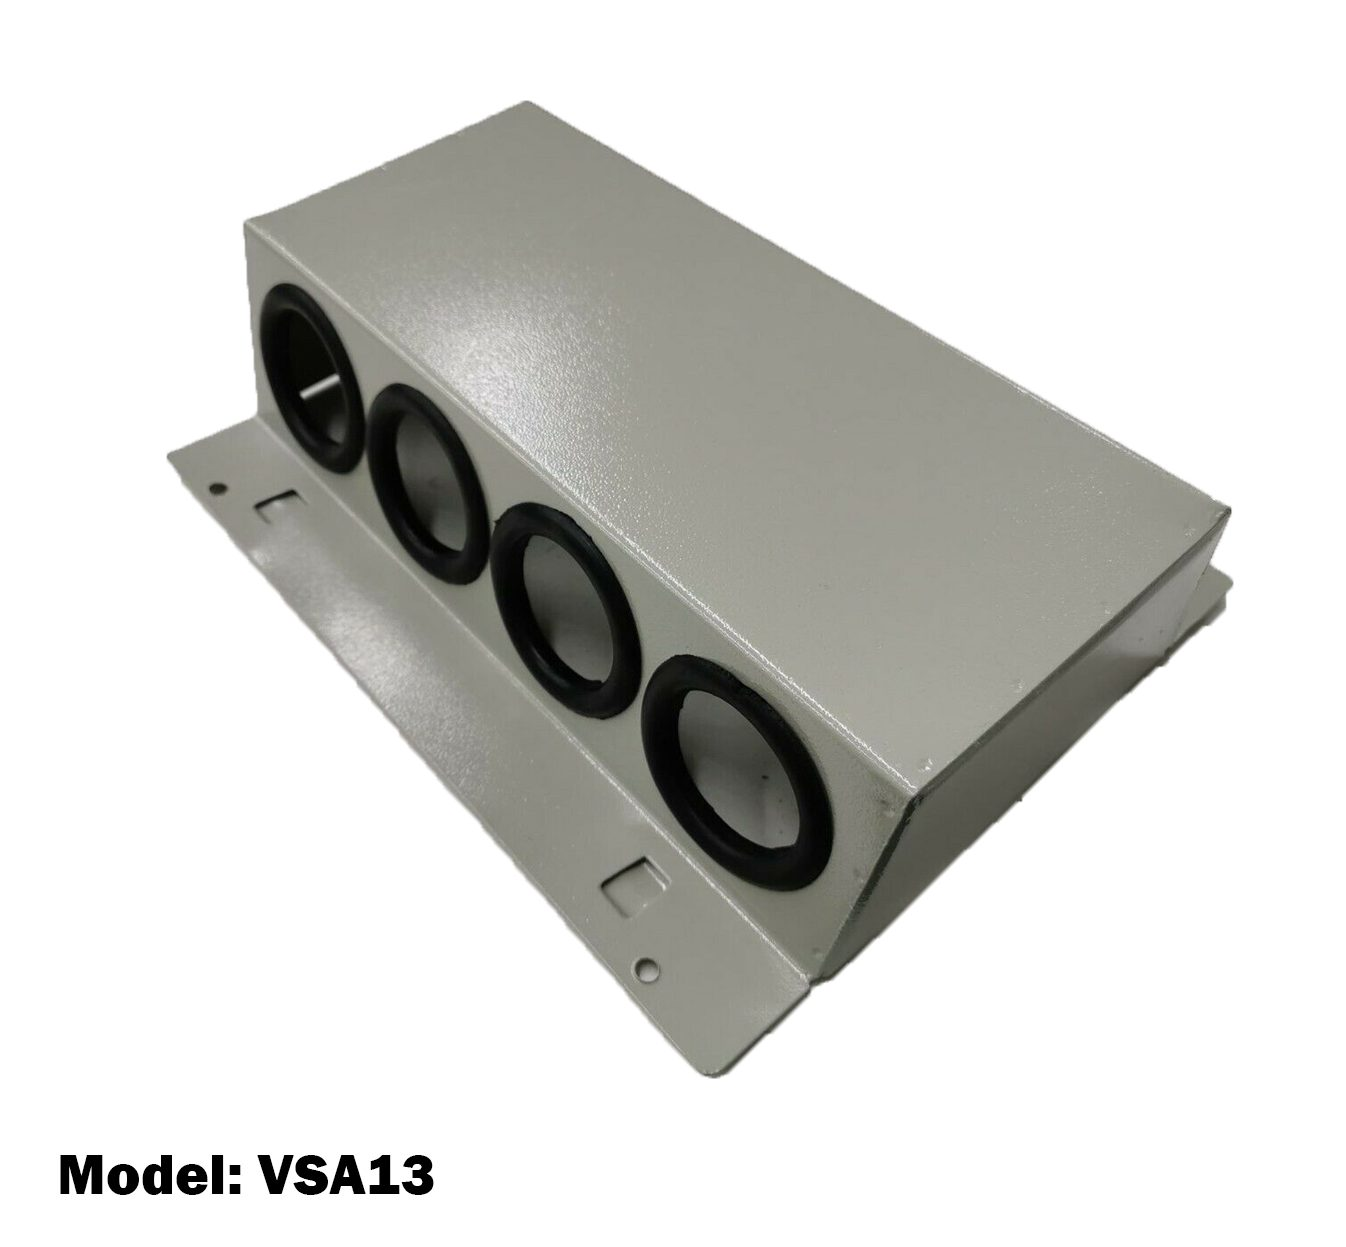 Van Shelving 4 Slot Caulking Tube Holder For Van Shelving System VSA13